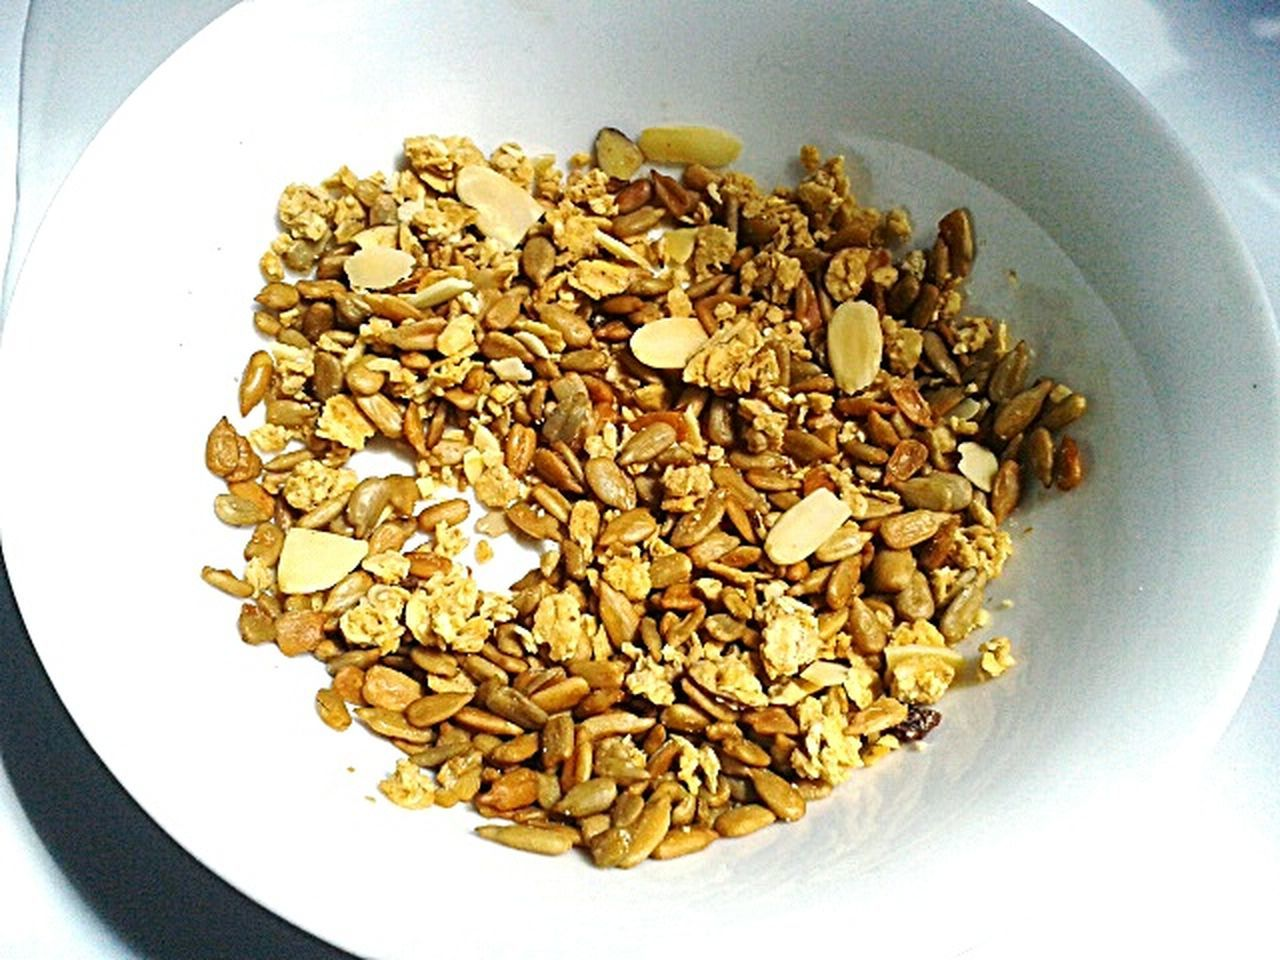 food and drink, bowl, healthy eating, food, no people, breakfast, oats - food, directly above, indoors, close-up, nut - food, granola, oat flake, pumpkin seed, freshness, white background, day